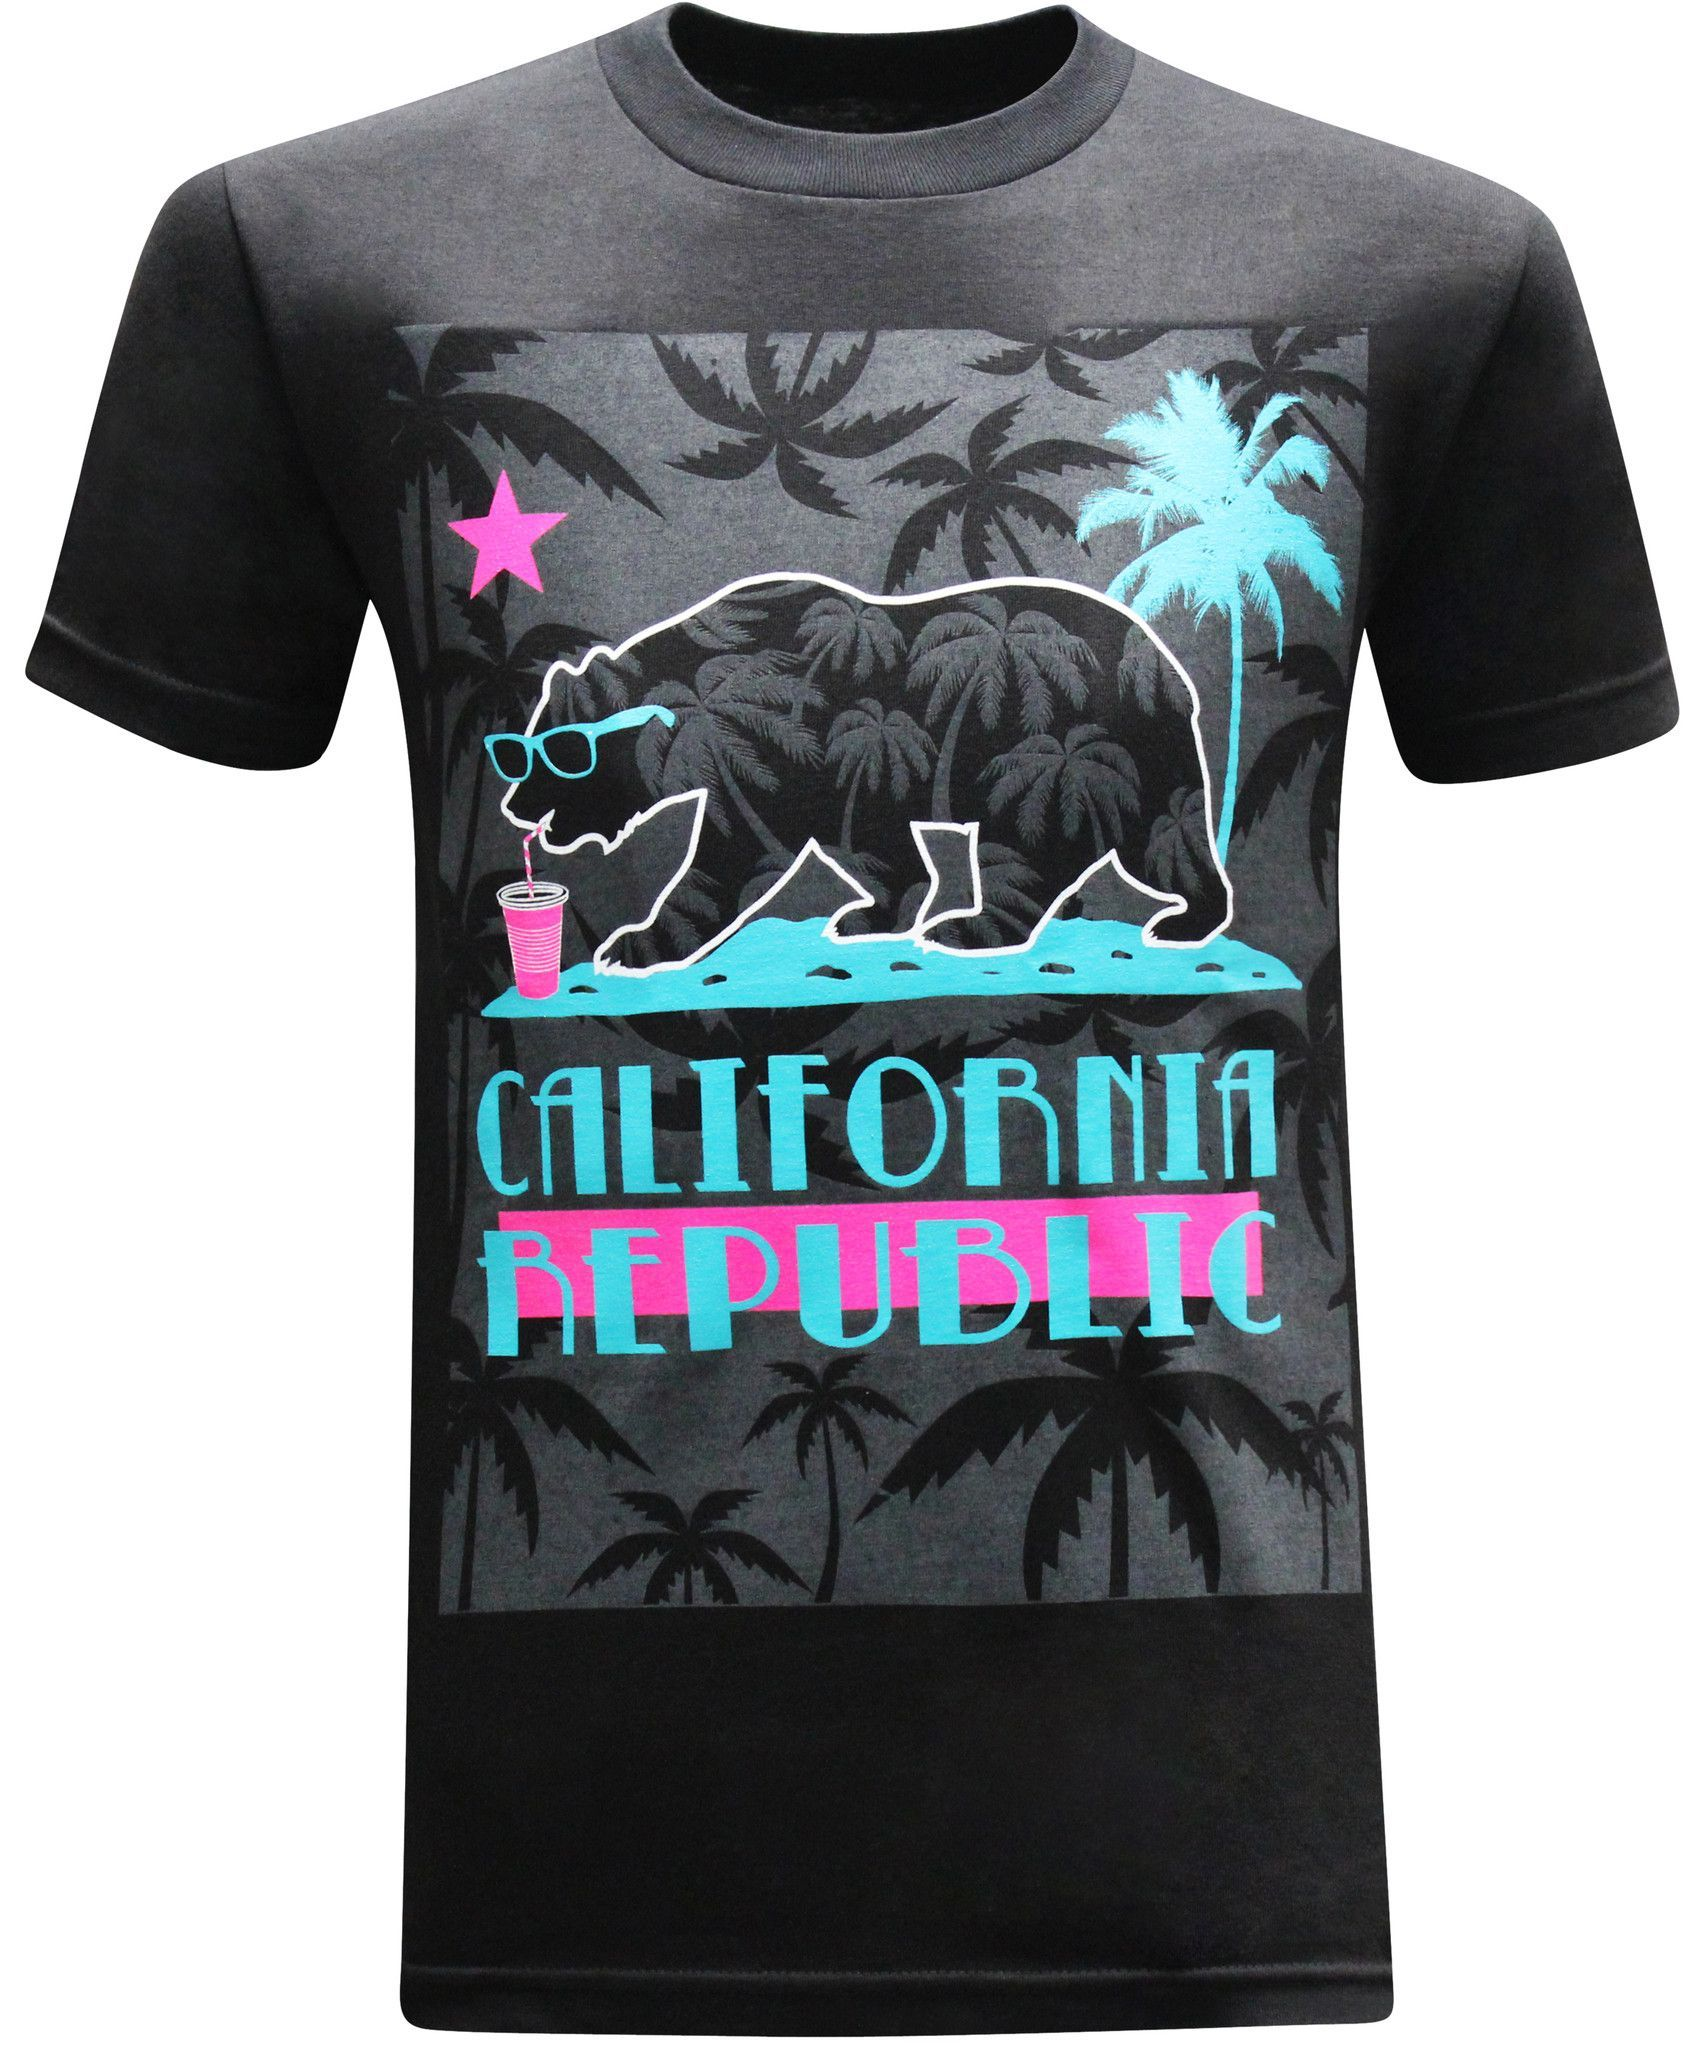 1ffaab492b7 100% Cotton - Fast shipping - Proudly printed in the USA with North  American garment - Makes a great gift! Nowhere else on the internet can you  find such a ...